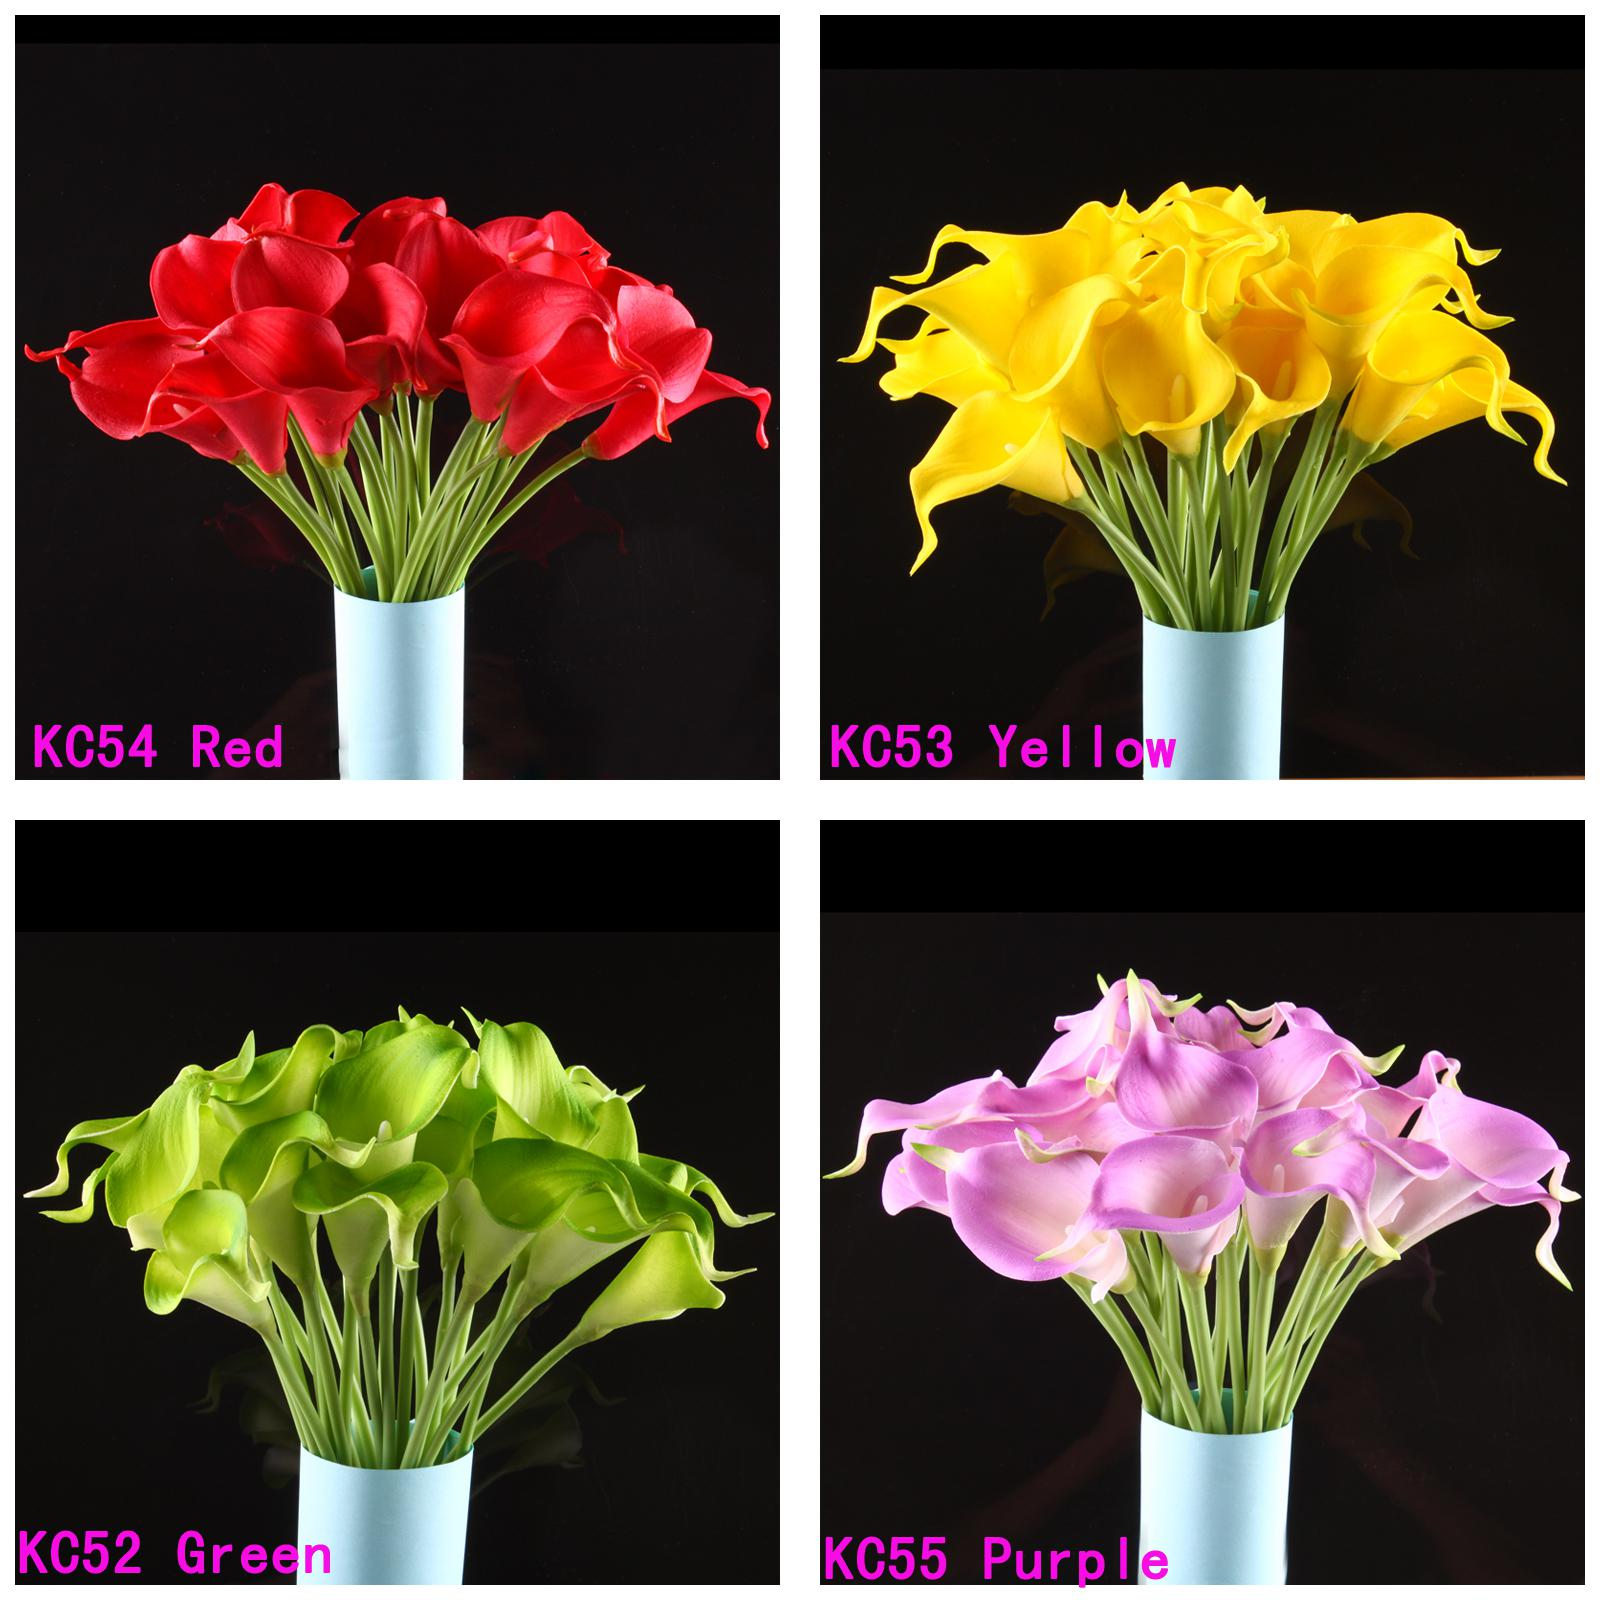 Calla lily bridal wedding bouquet 20 head latex real touch flower calla lily bridal wedding bouquet 20 head latex real touch flower bouquets fresh flower bridal bouquets gerberas wedding flowers from etongwolf izmirmasajfo